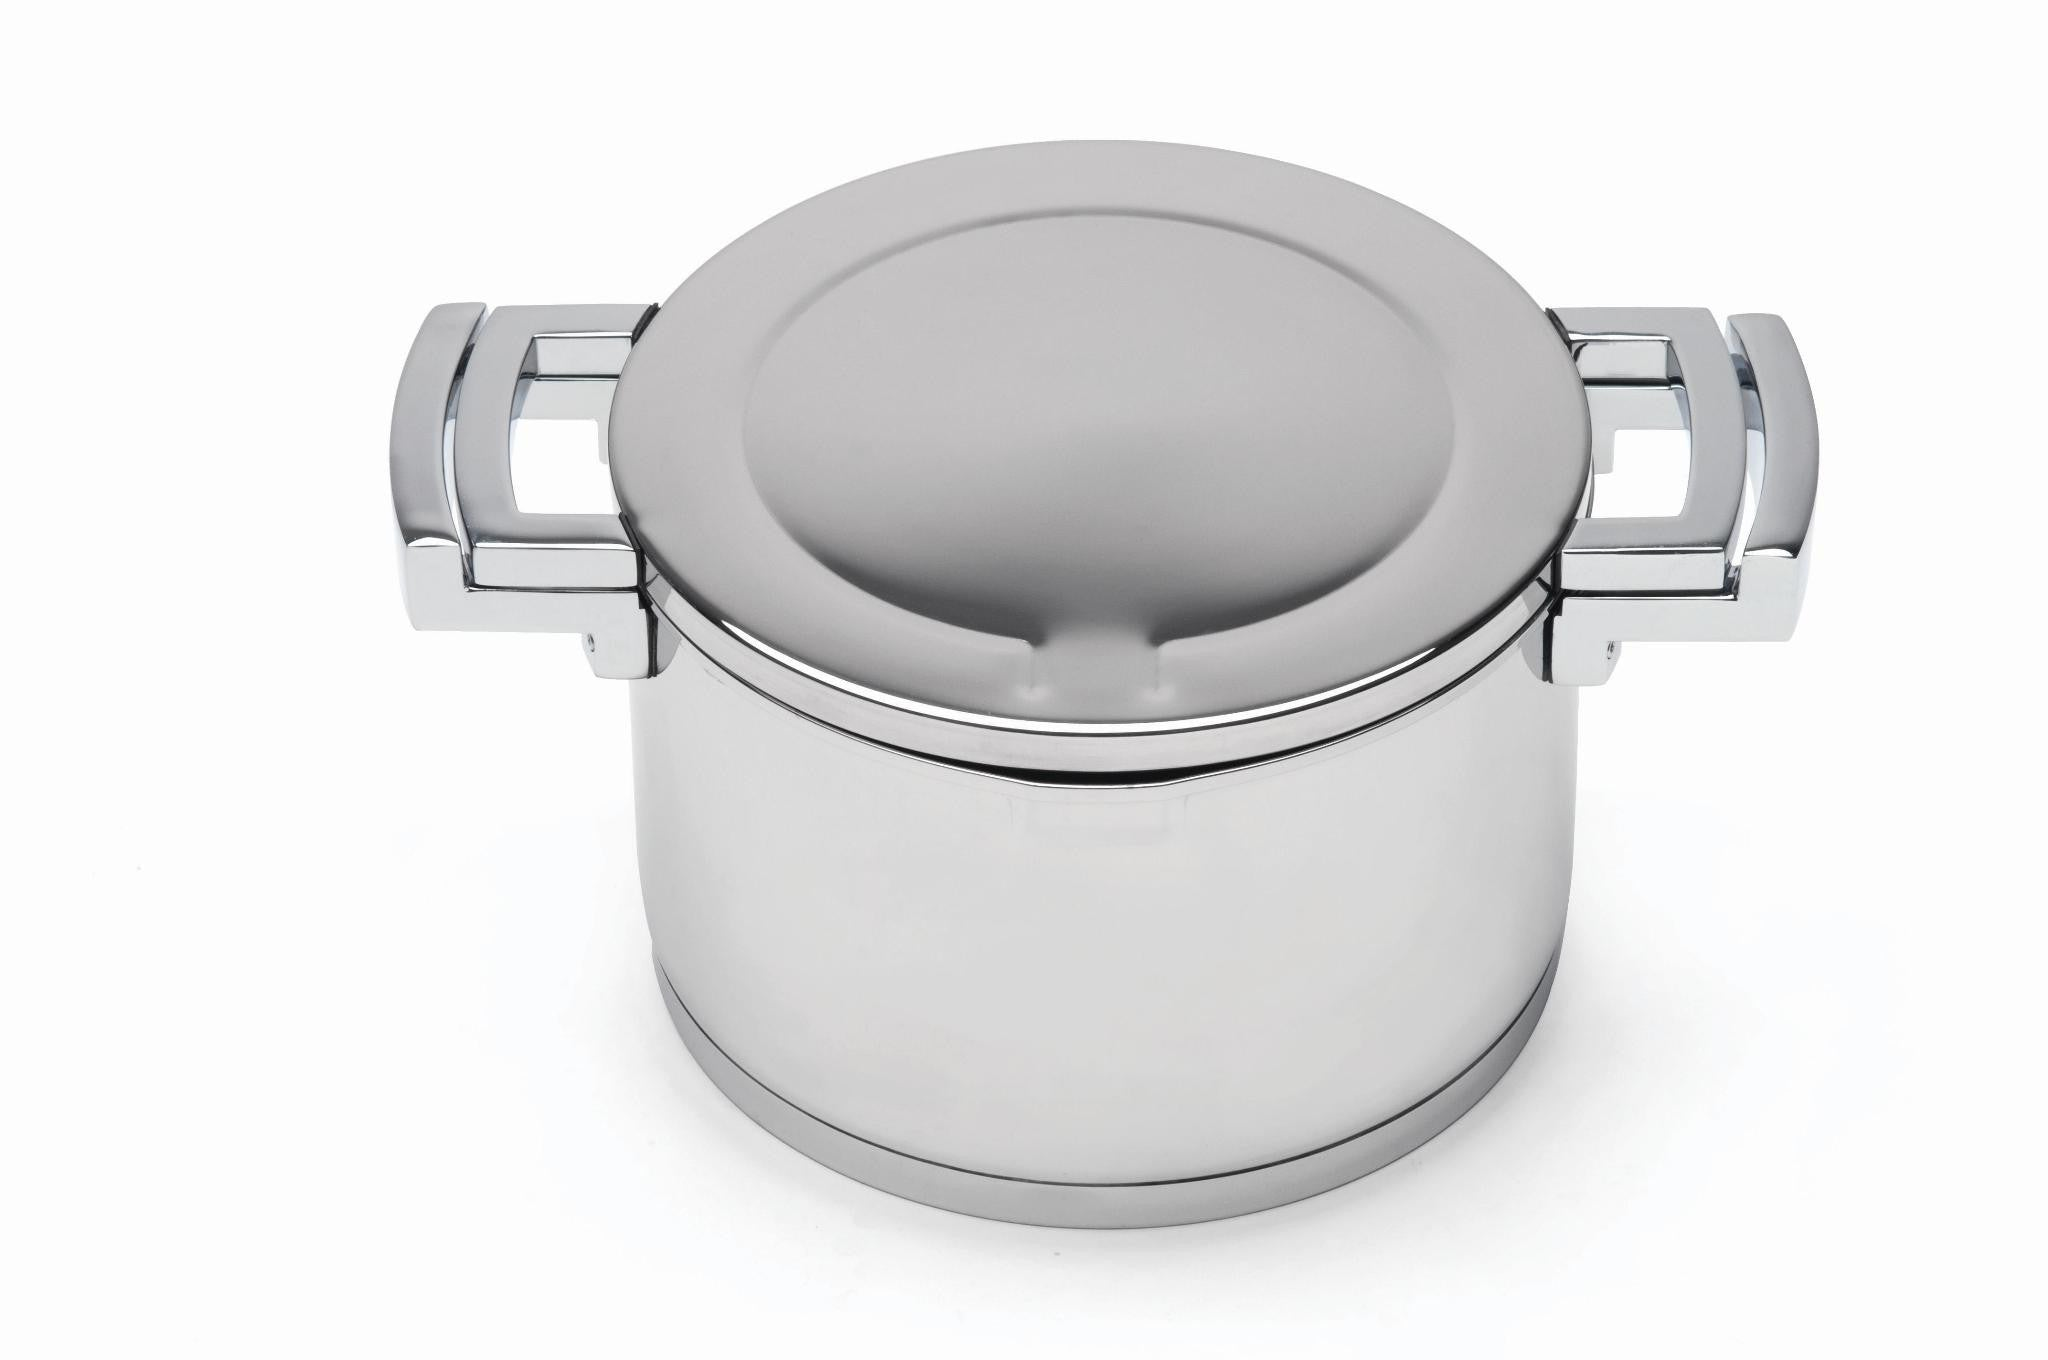 Neo Stainless Steel 24cm 6.3L Covered Stockpot